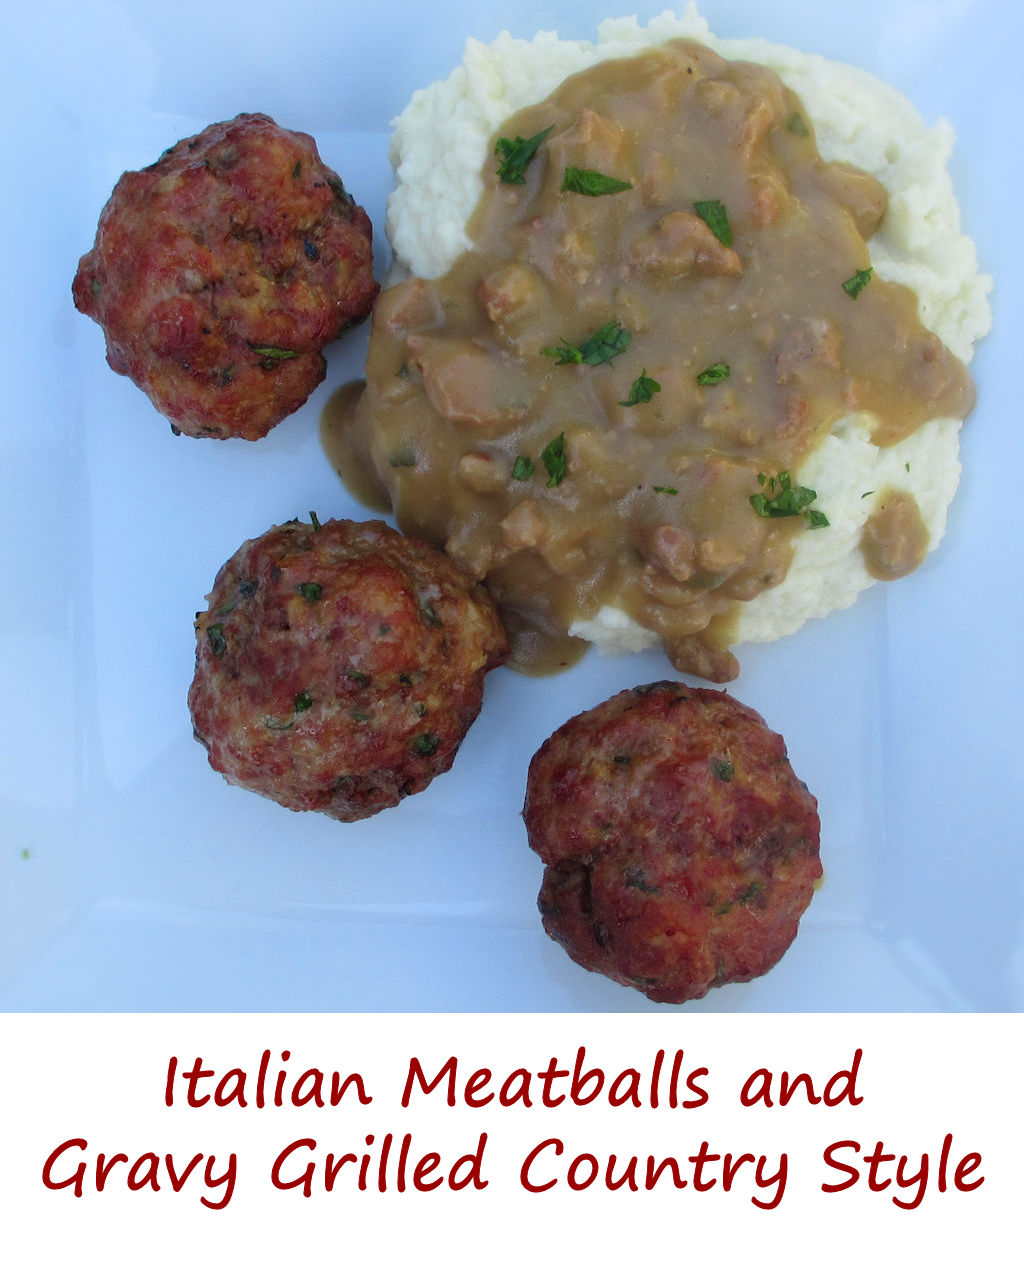 Italian Meatballs and Gravy Grilled Country Style